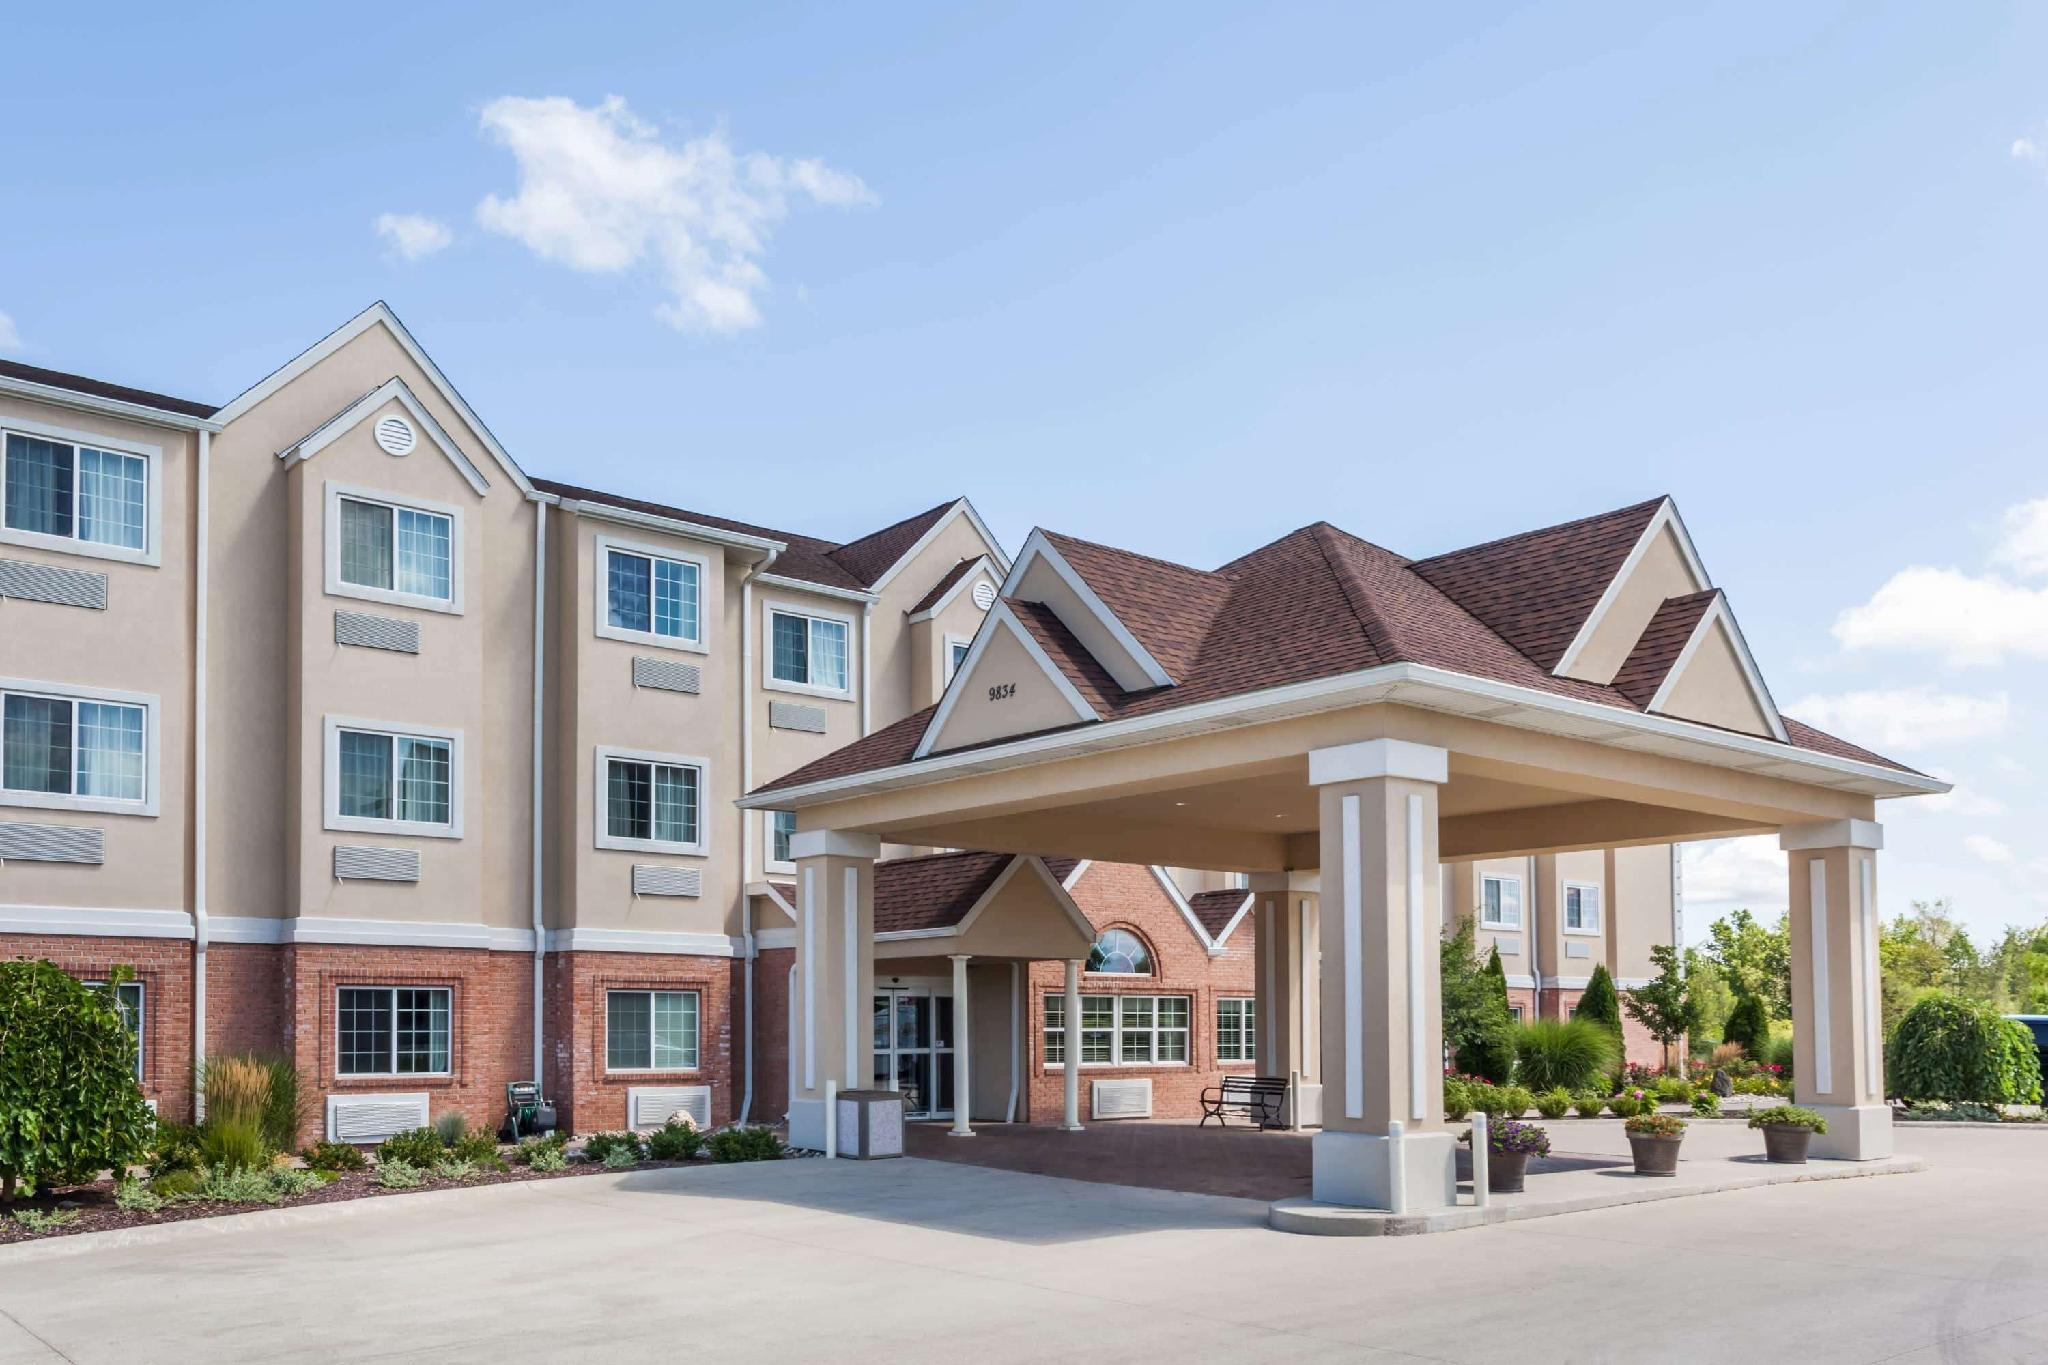 Microtel Inn And Suites By Wyndham Michigan City